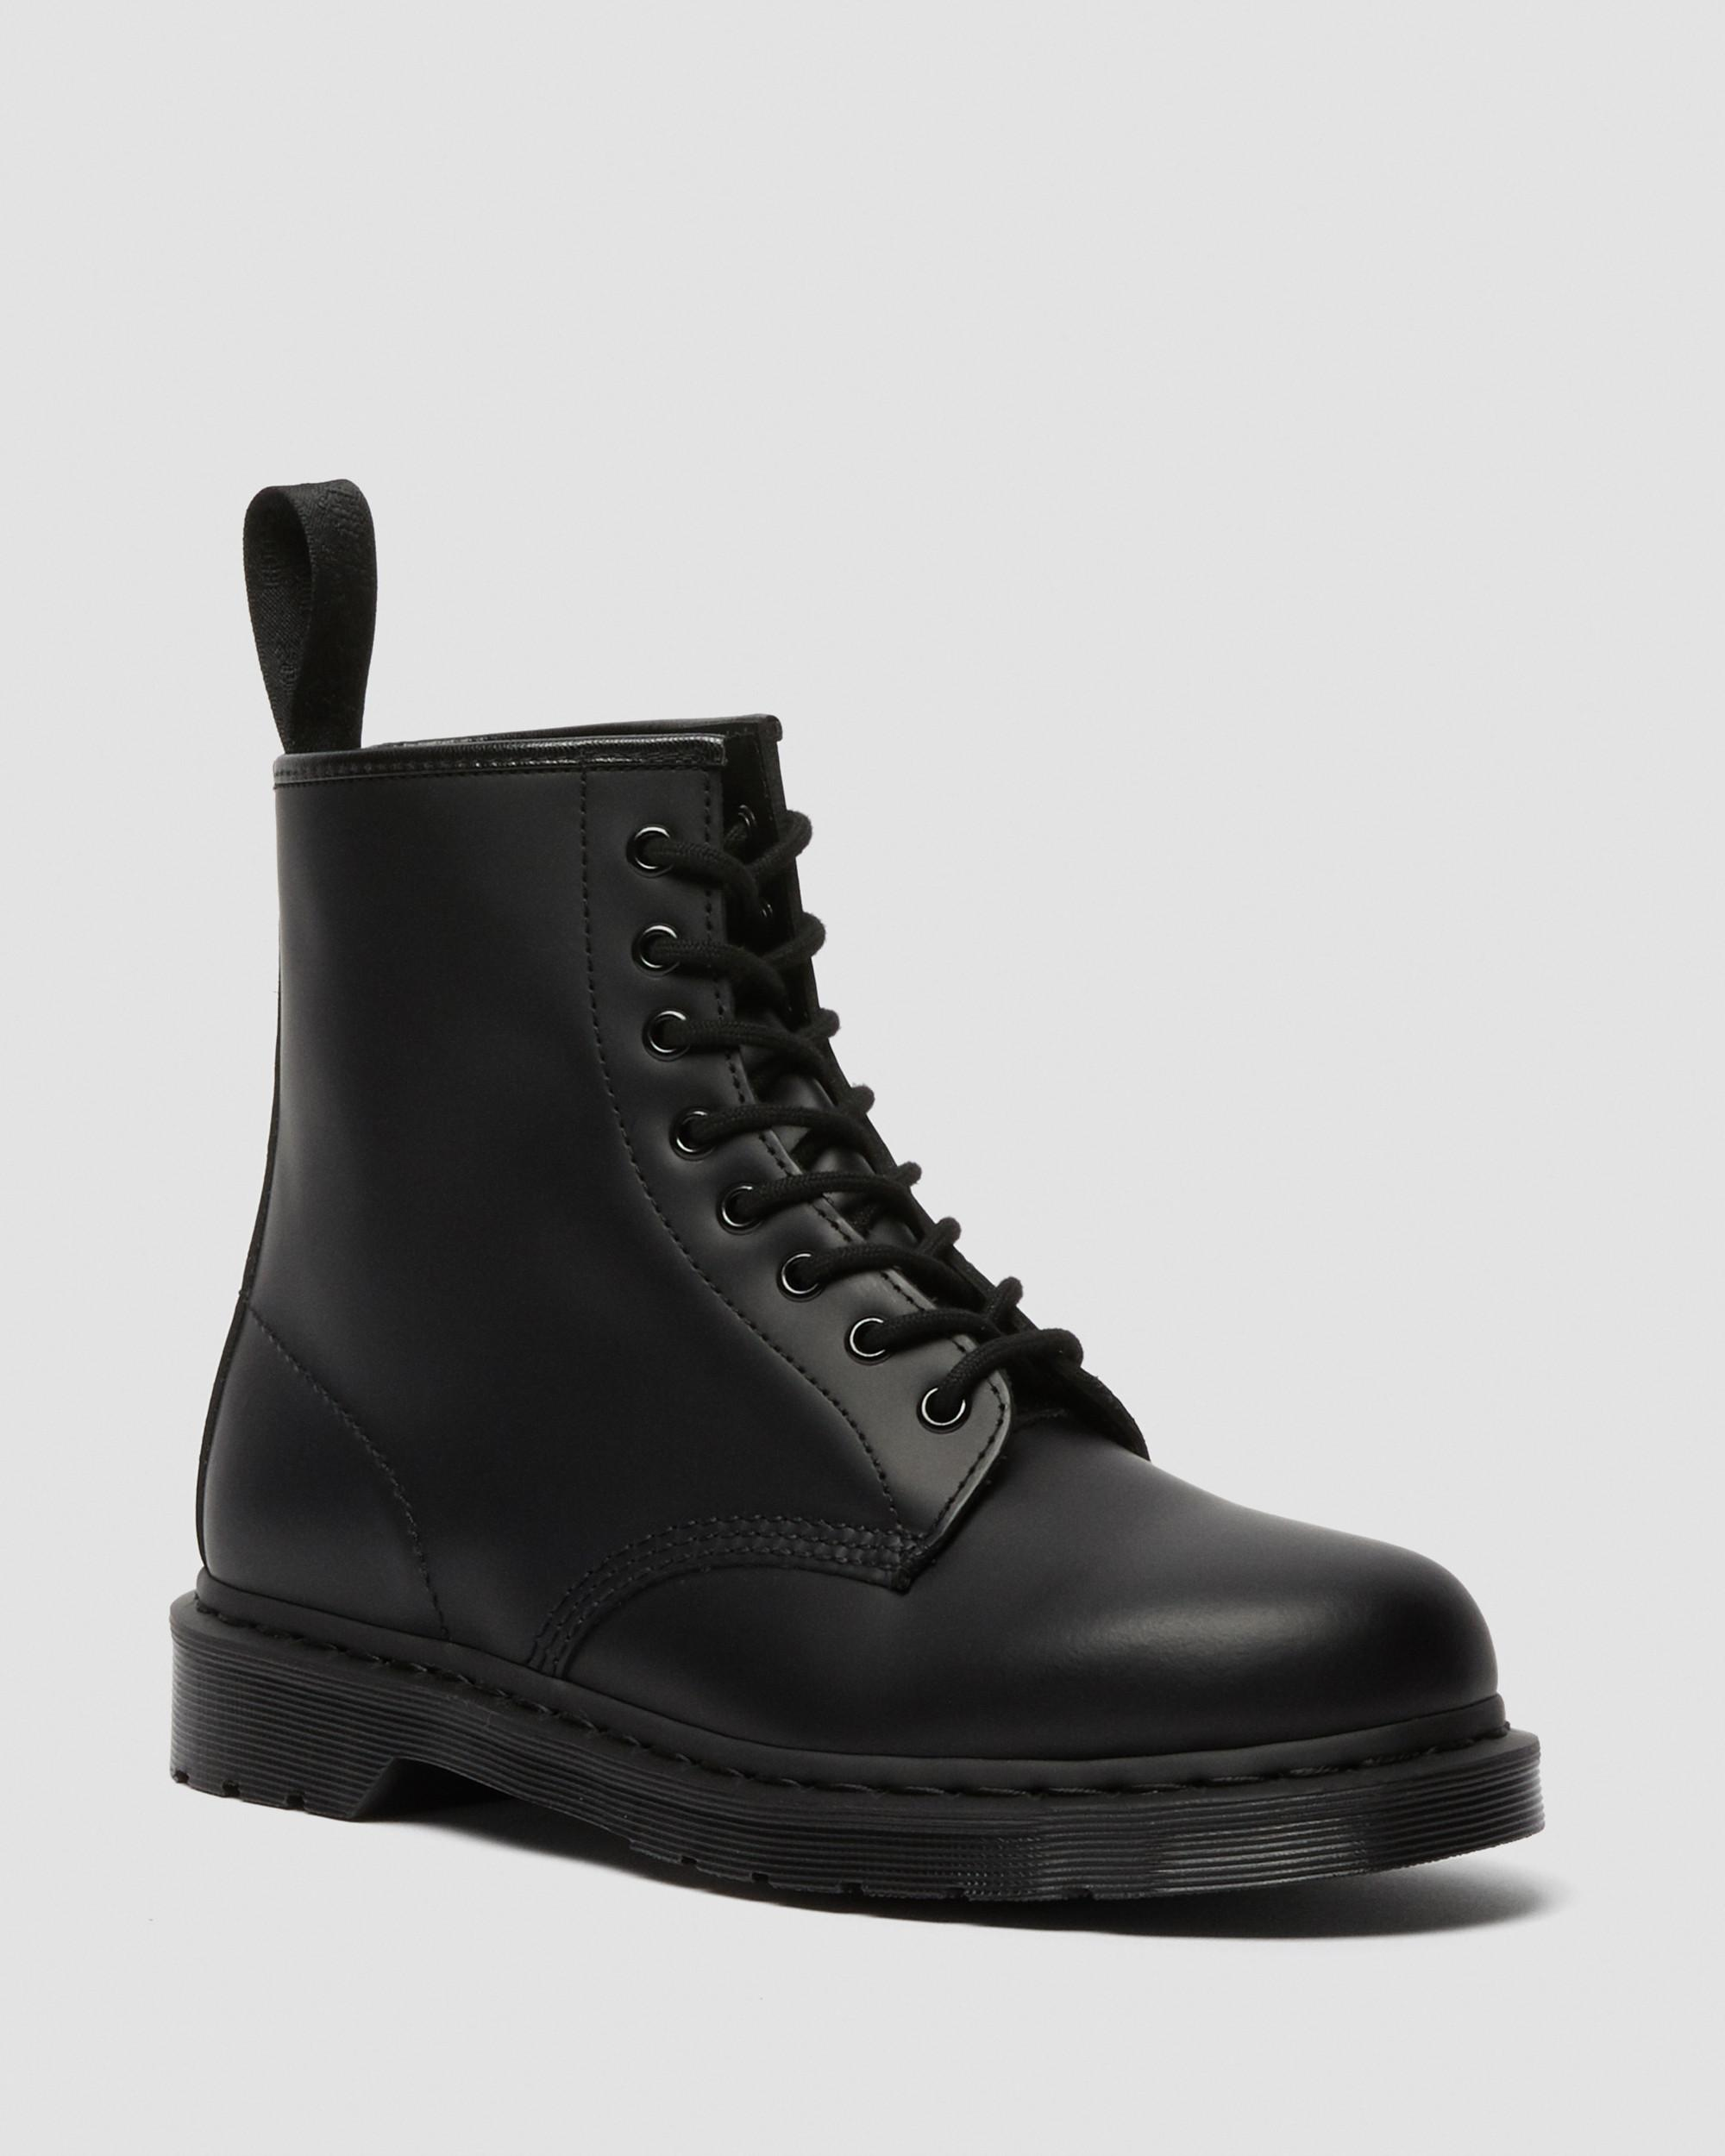 1460 MONO SMOOTH LEATHER LACE UP BOOTS | Original Best